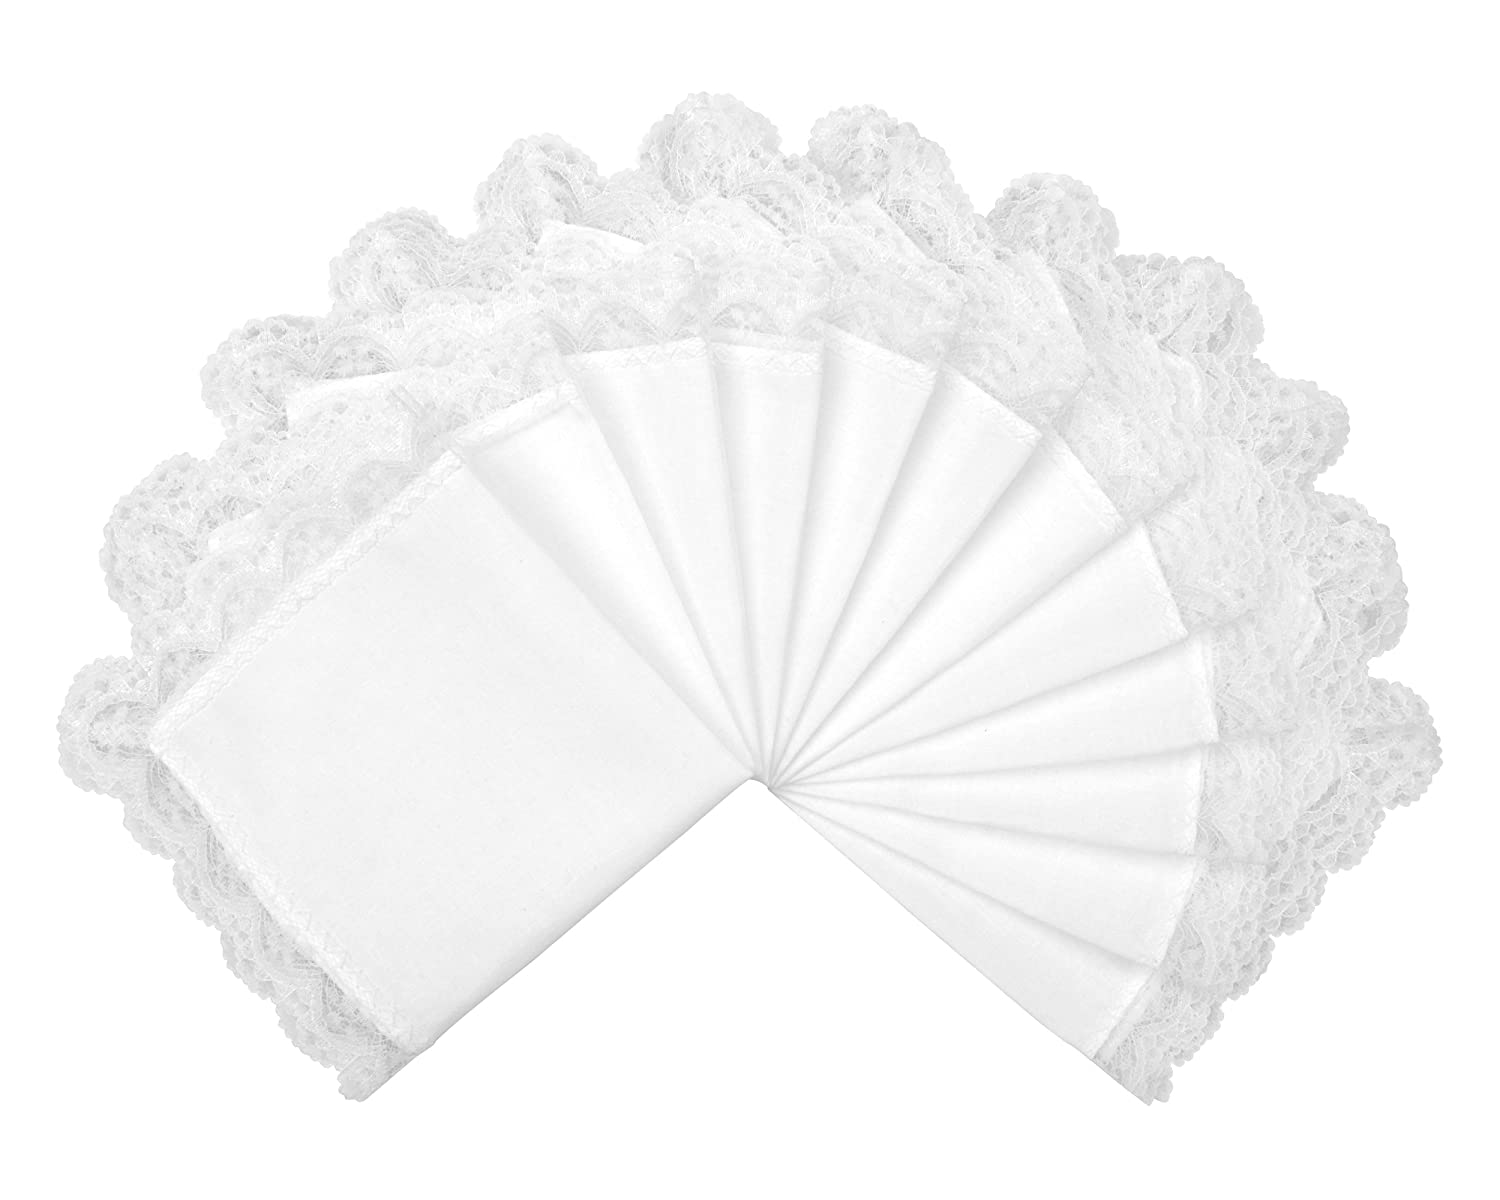 "Milesky Solid White Wedding Cotton Handkerchiefs with Lace Edges Square 10 x 10"" (Pack of 12)"